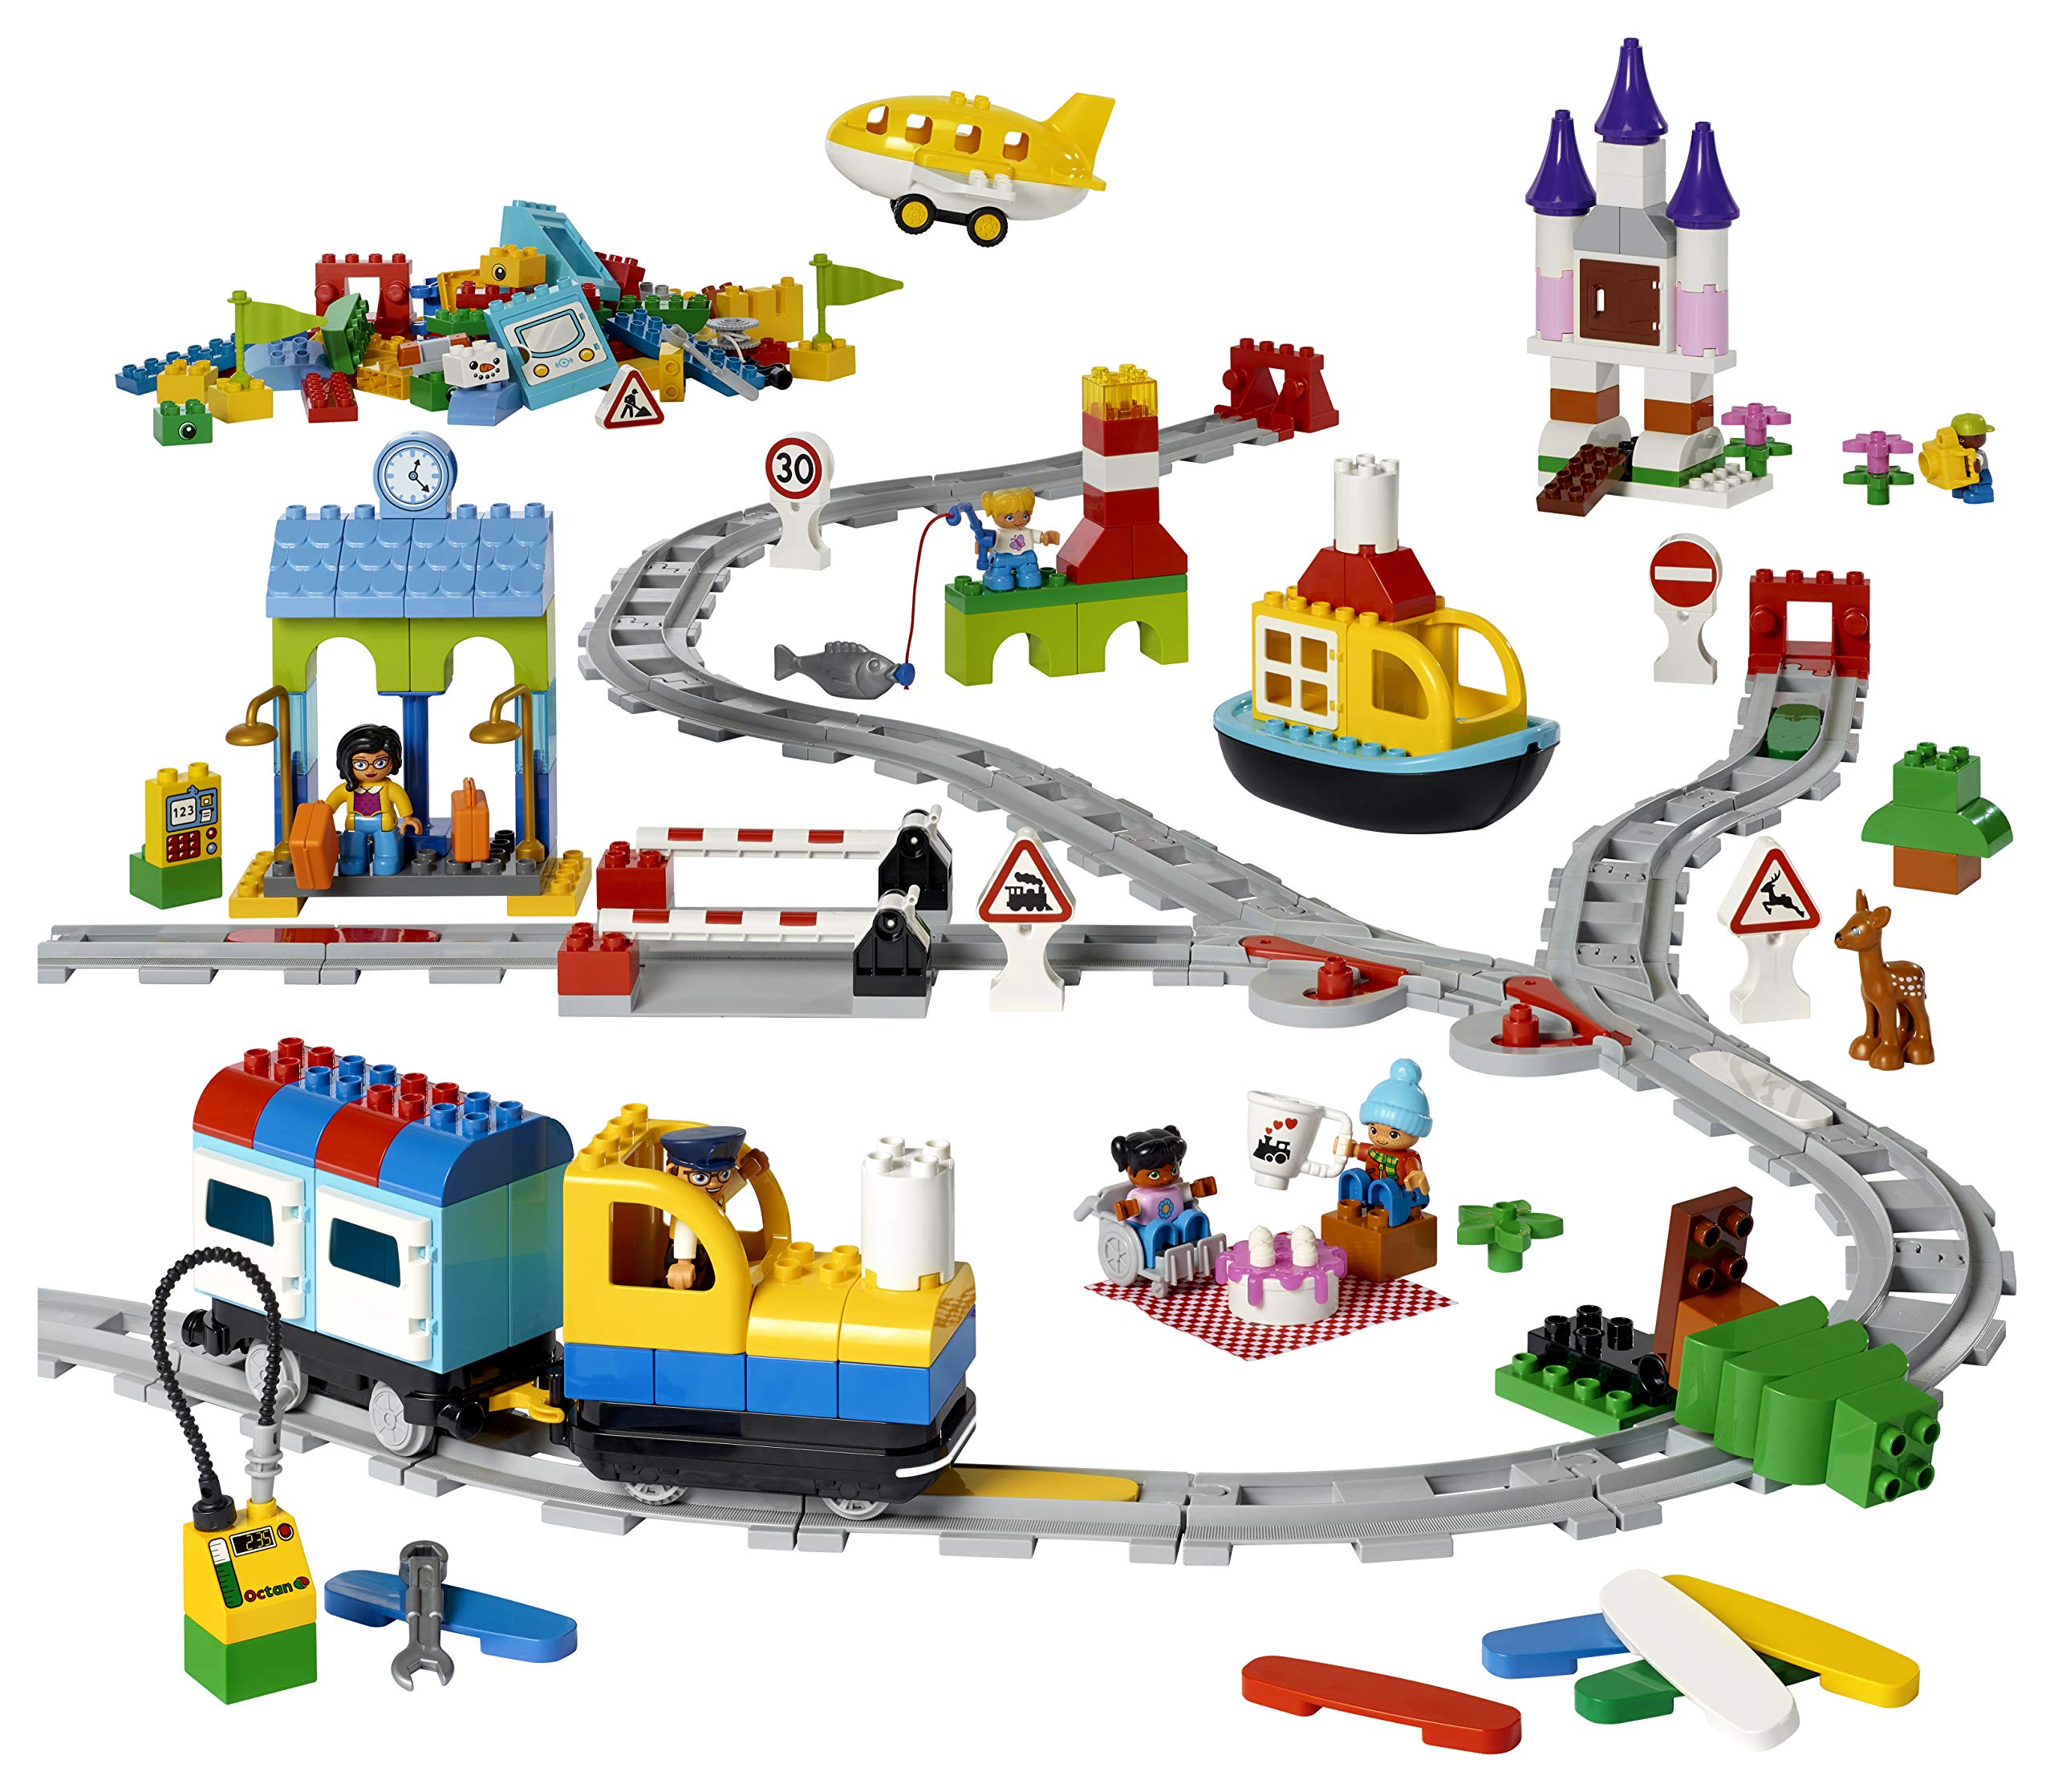 Lego Coding Express Duplo Set 45025, Fun STEM Educational Toy, Introduction to Steam Learning for Girls & Boys Ages 2 & Up (234Piece) by LEGO Education (Image #3)